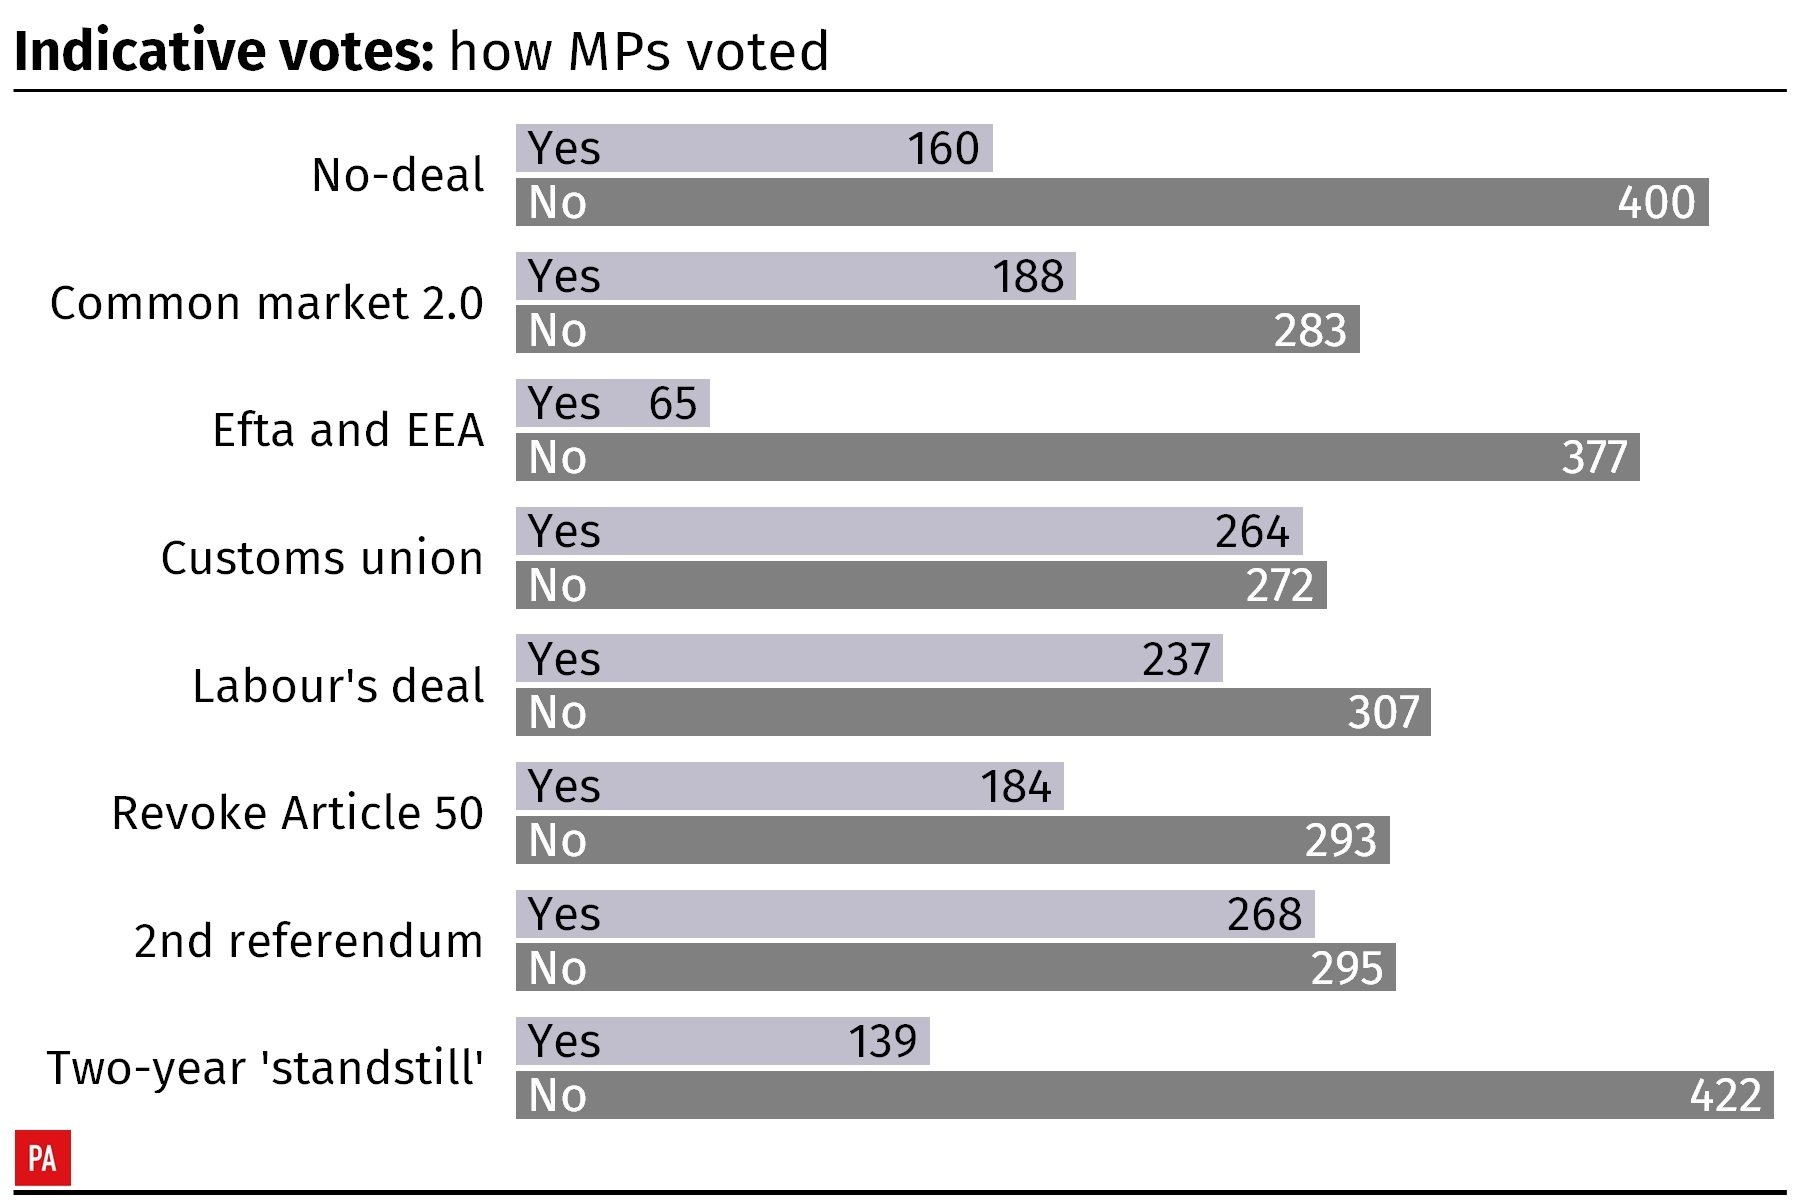 The results of the indicative votes by MPs on alternative Brexit options